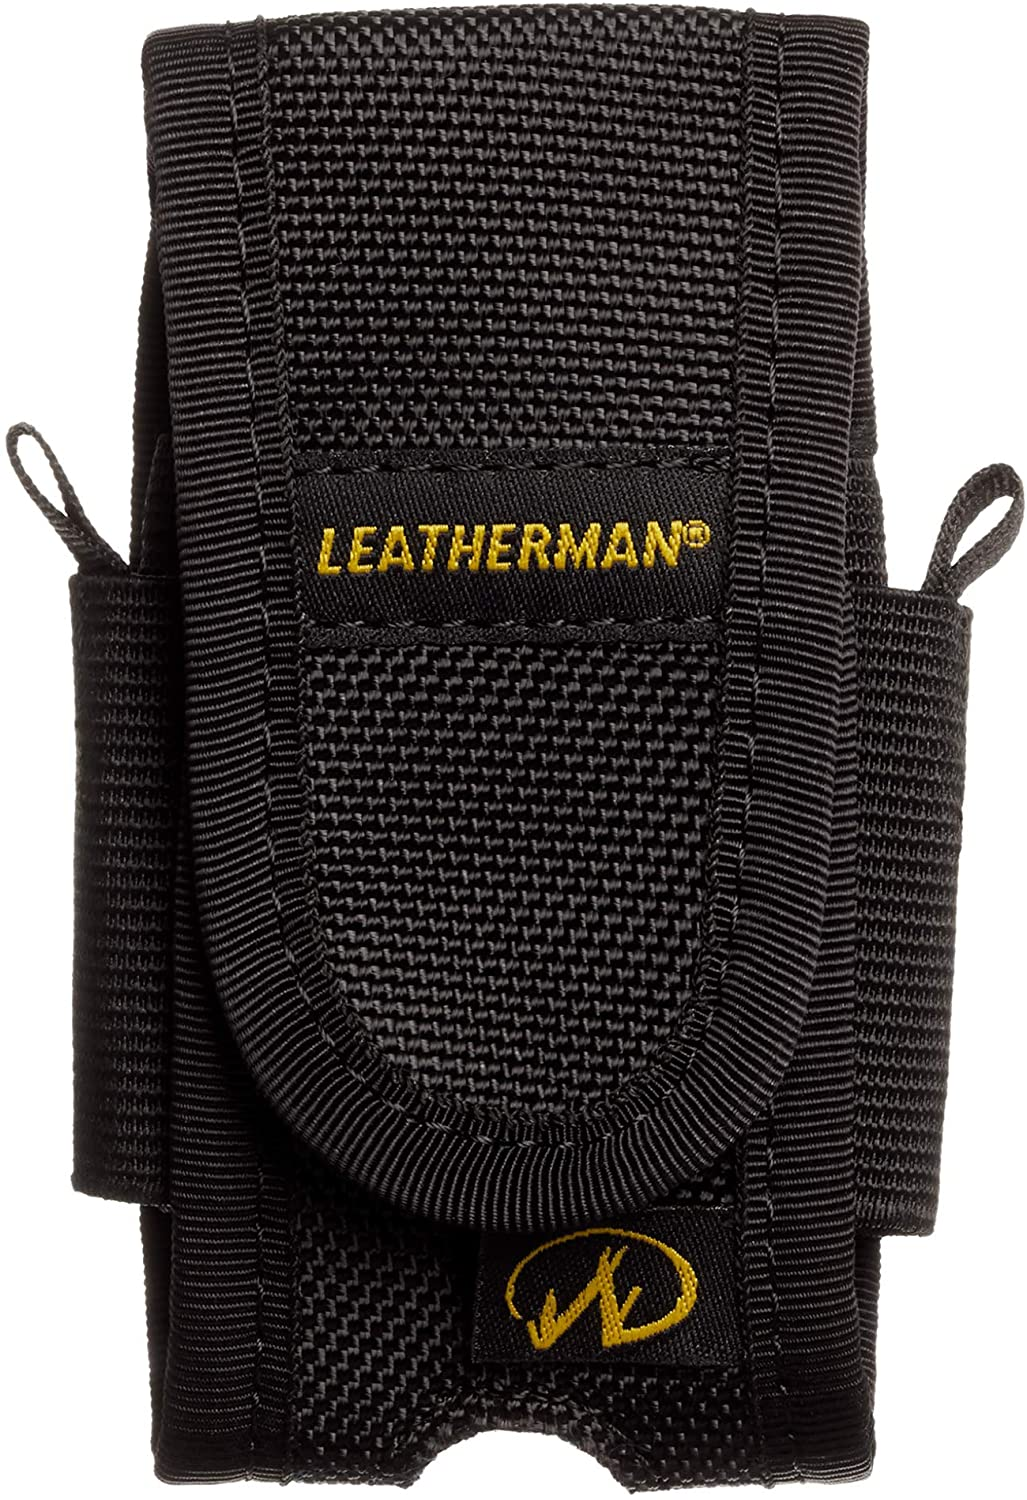 LEATHERMAN - Standard Nylon Sheath With Pockets For Wave Charge Sidekcik, Fits 4